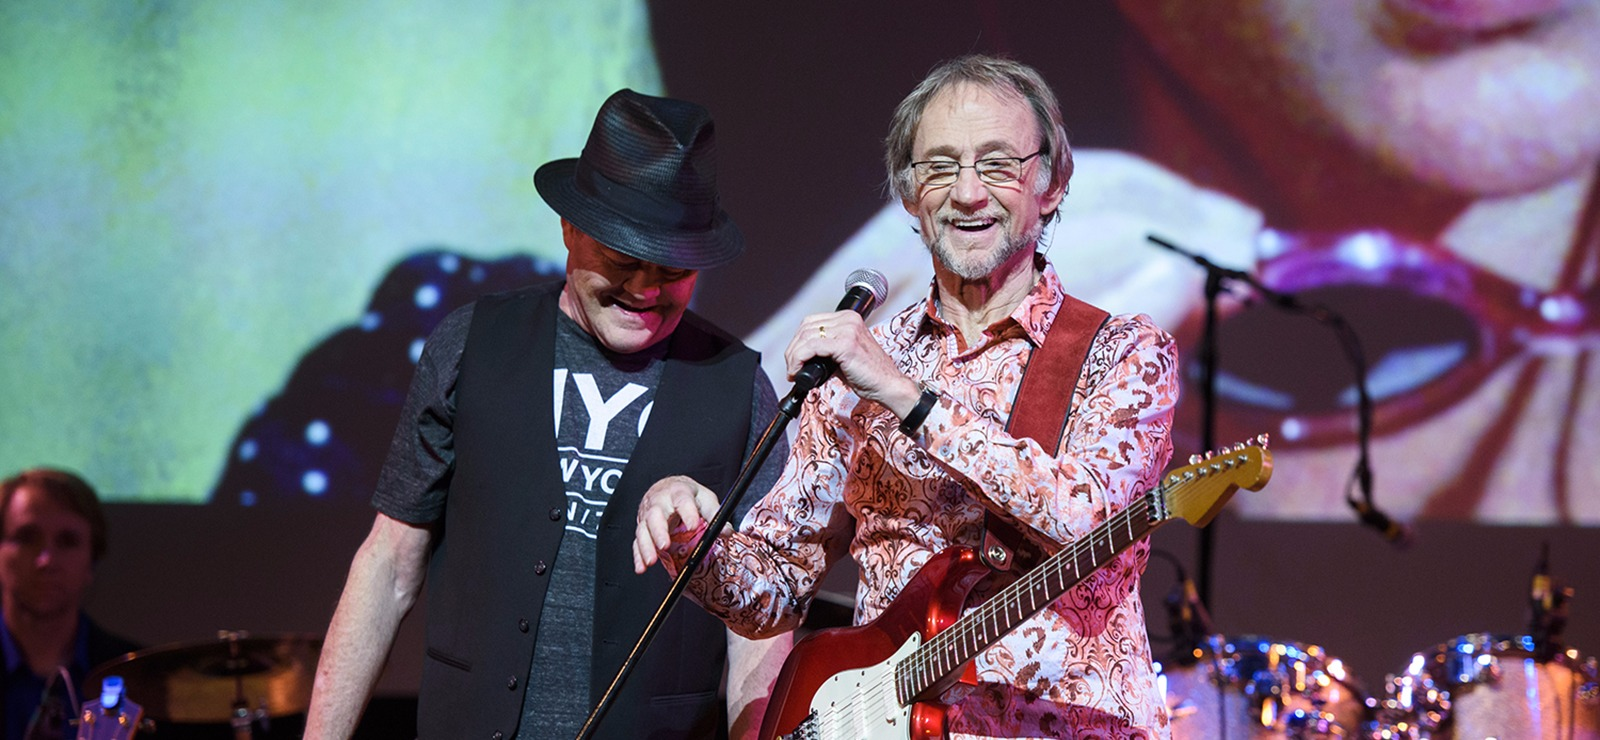 La surprise des Monkees